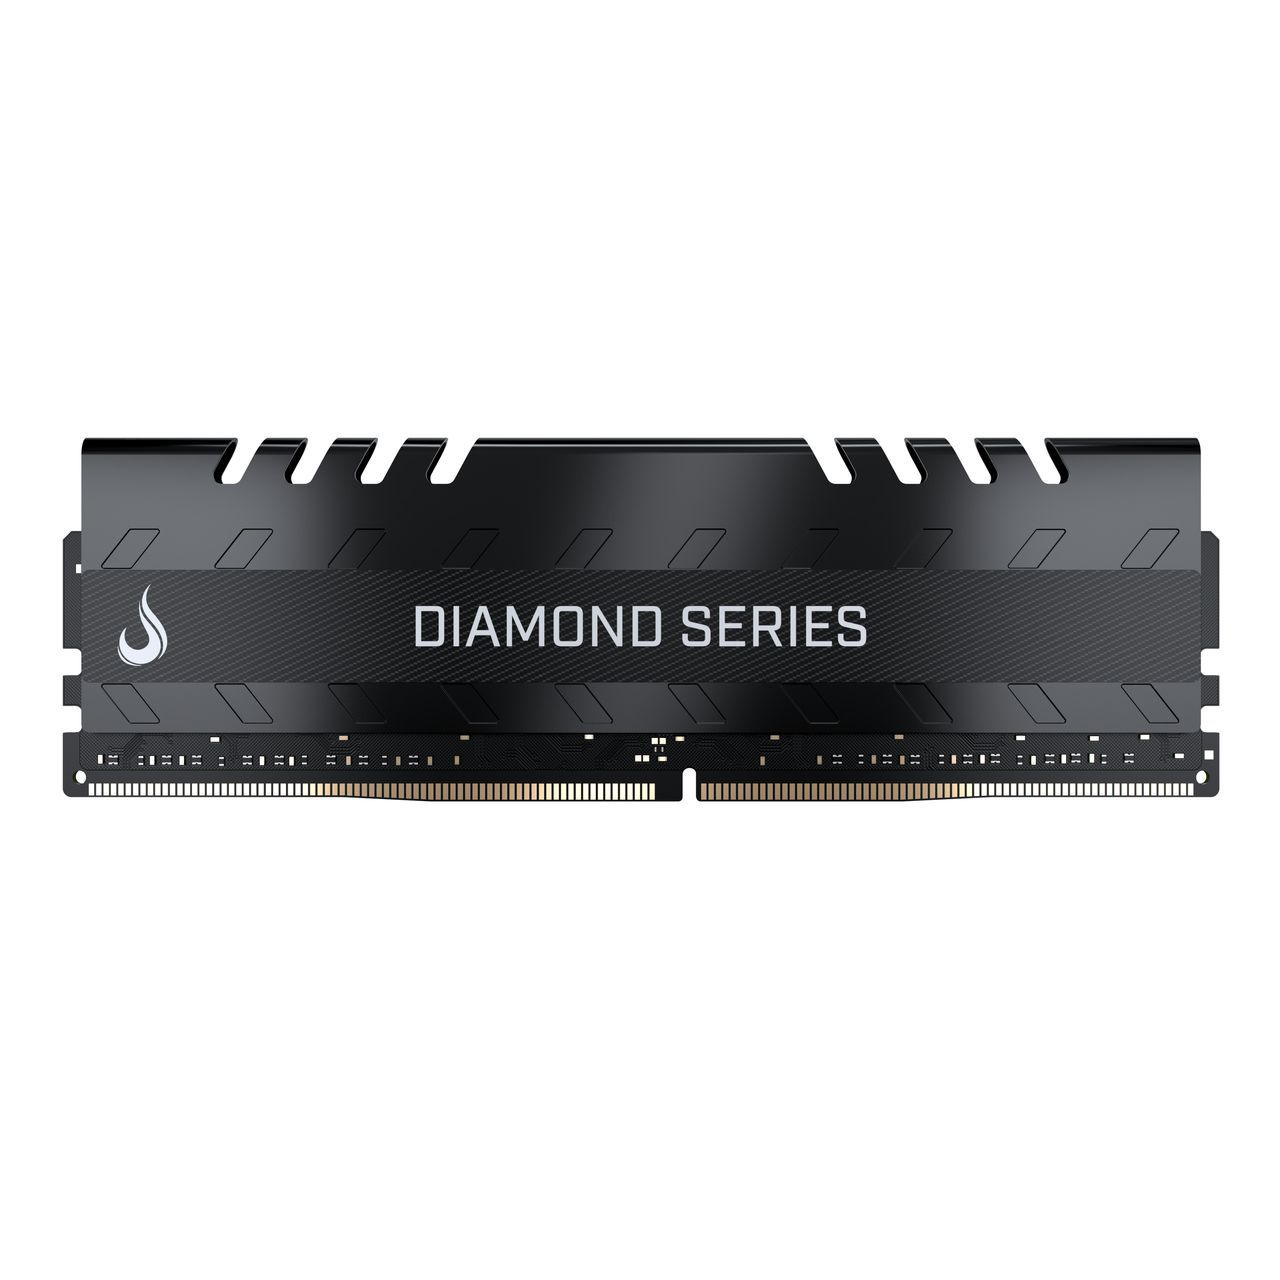 Memoria Ram DDR4 4GB 2400MHZ Diamond - RM-D4-4G-2400D  BLACK  - Loja Rise Mode